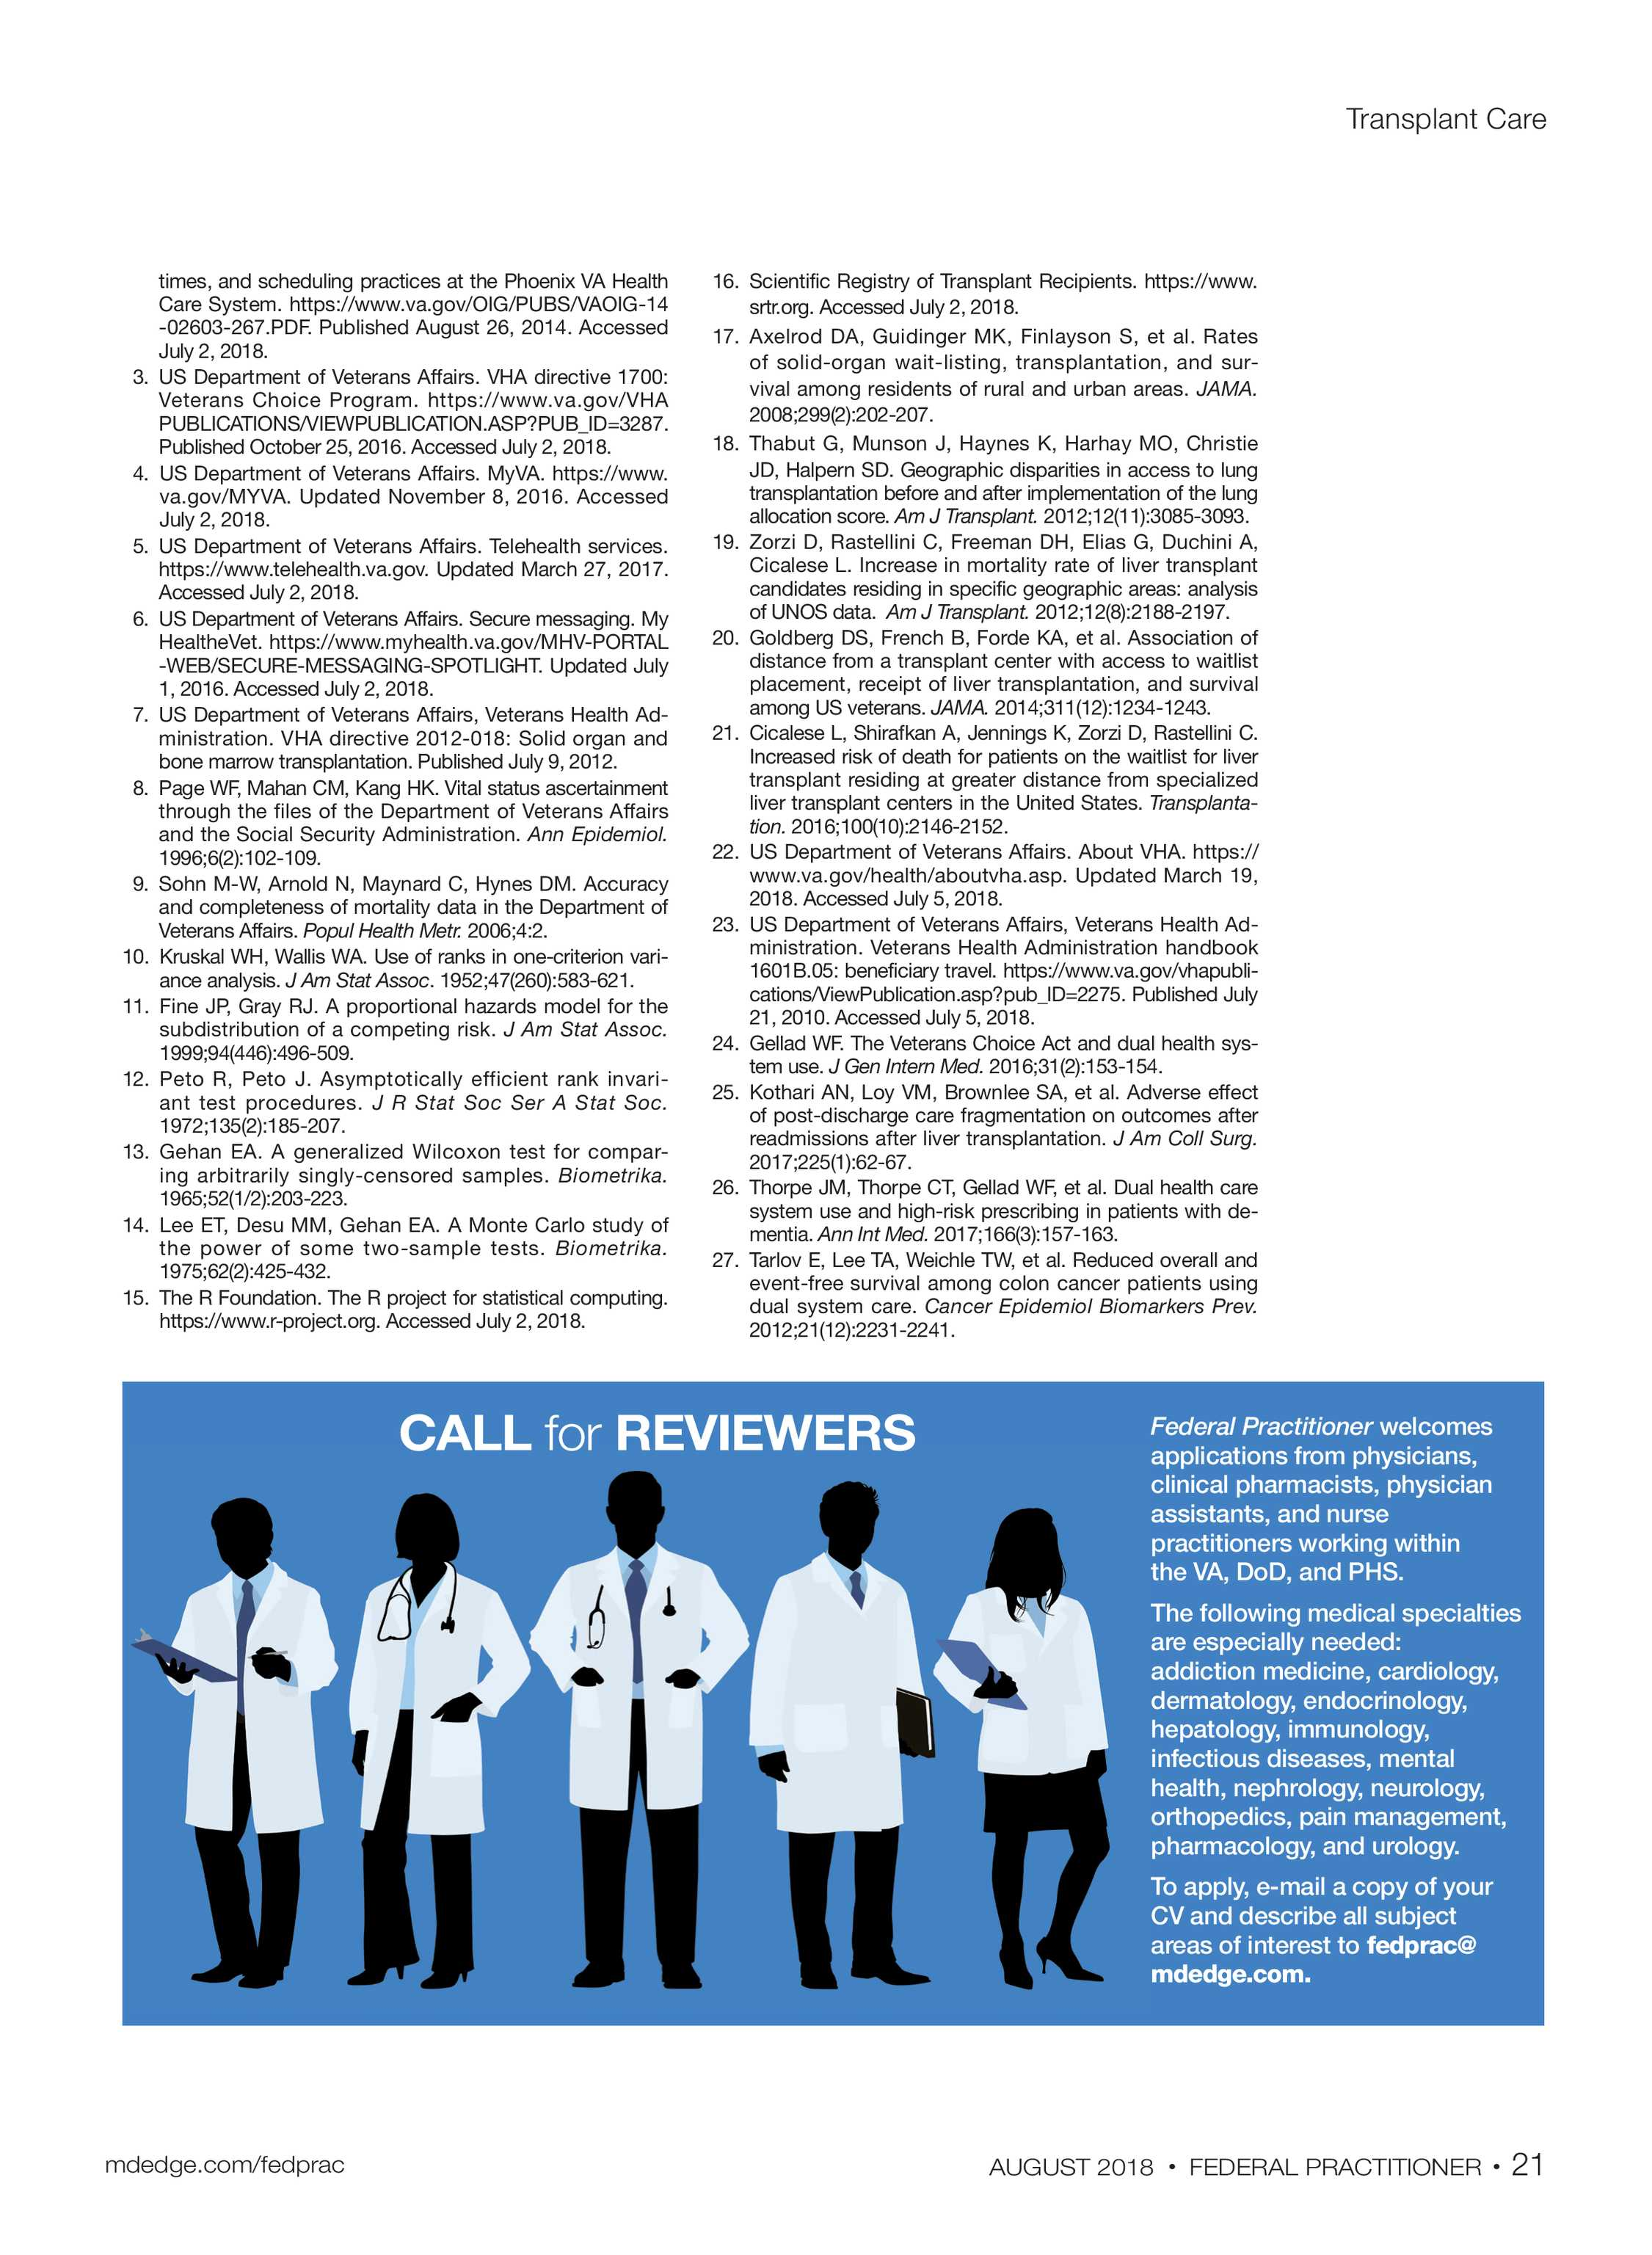 Federal Practitioner - AUGUST 2018 - page 21